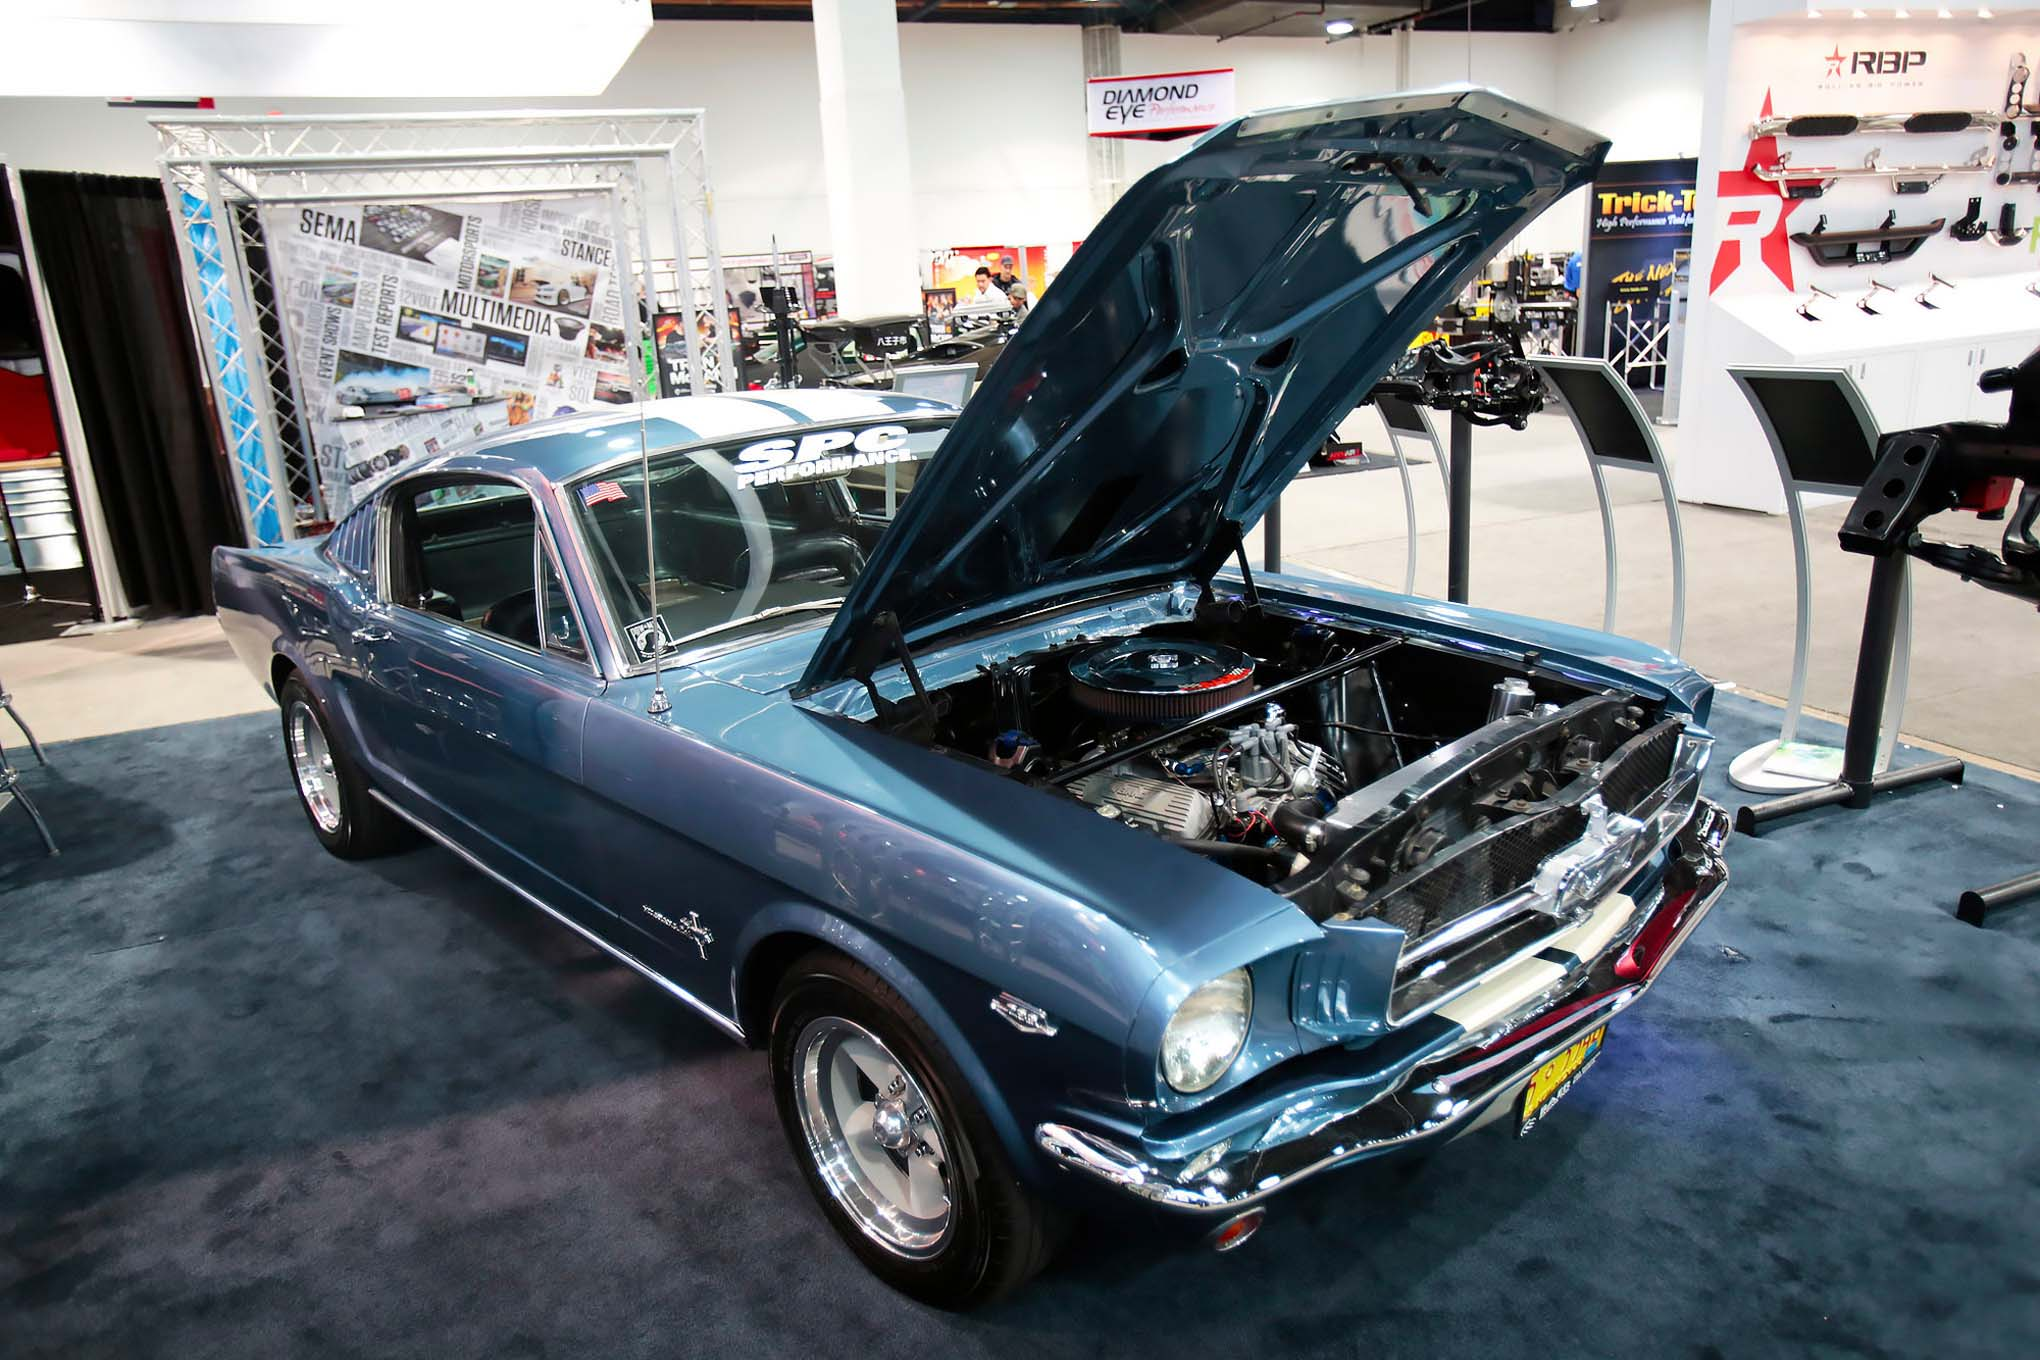 SEMA 2015 After Hours Photo Gallery 058 Lpr